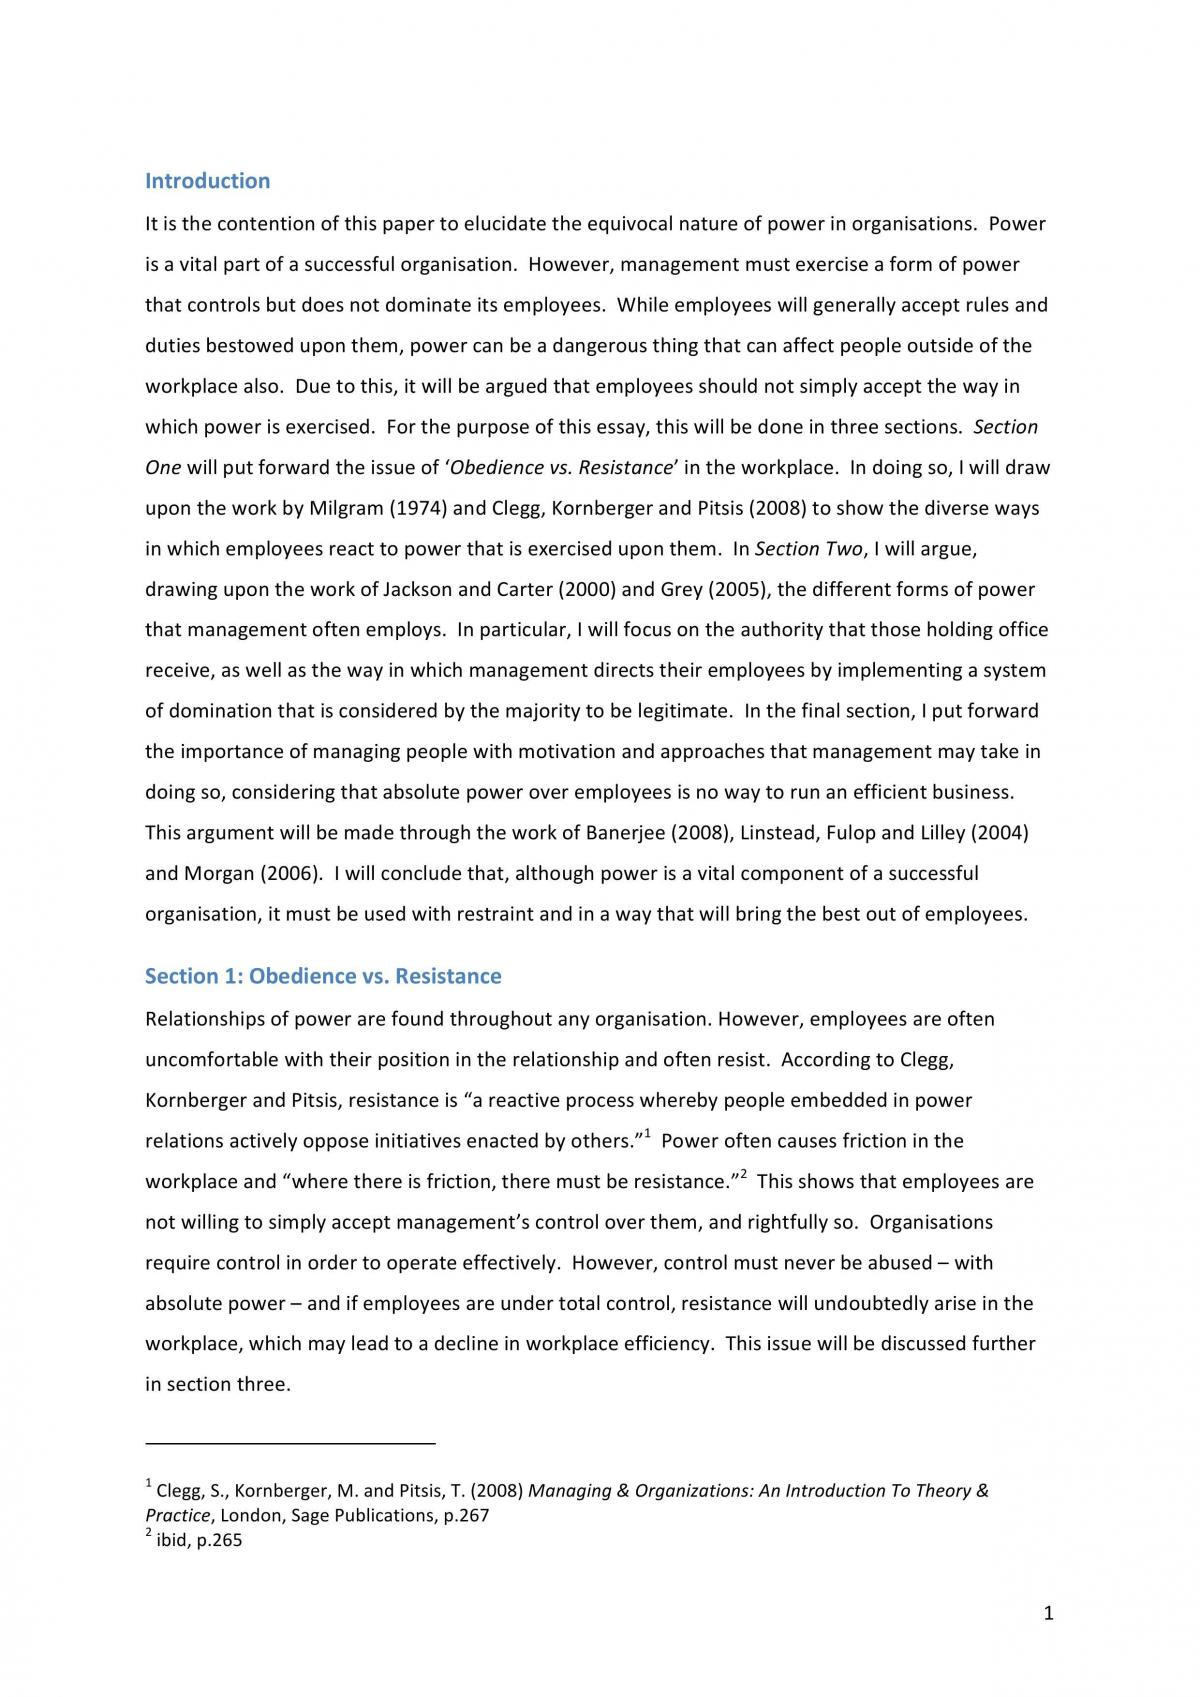 MPO Essay On Power - Page 1